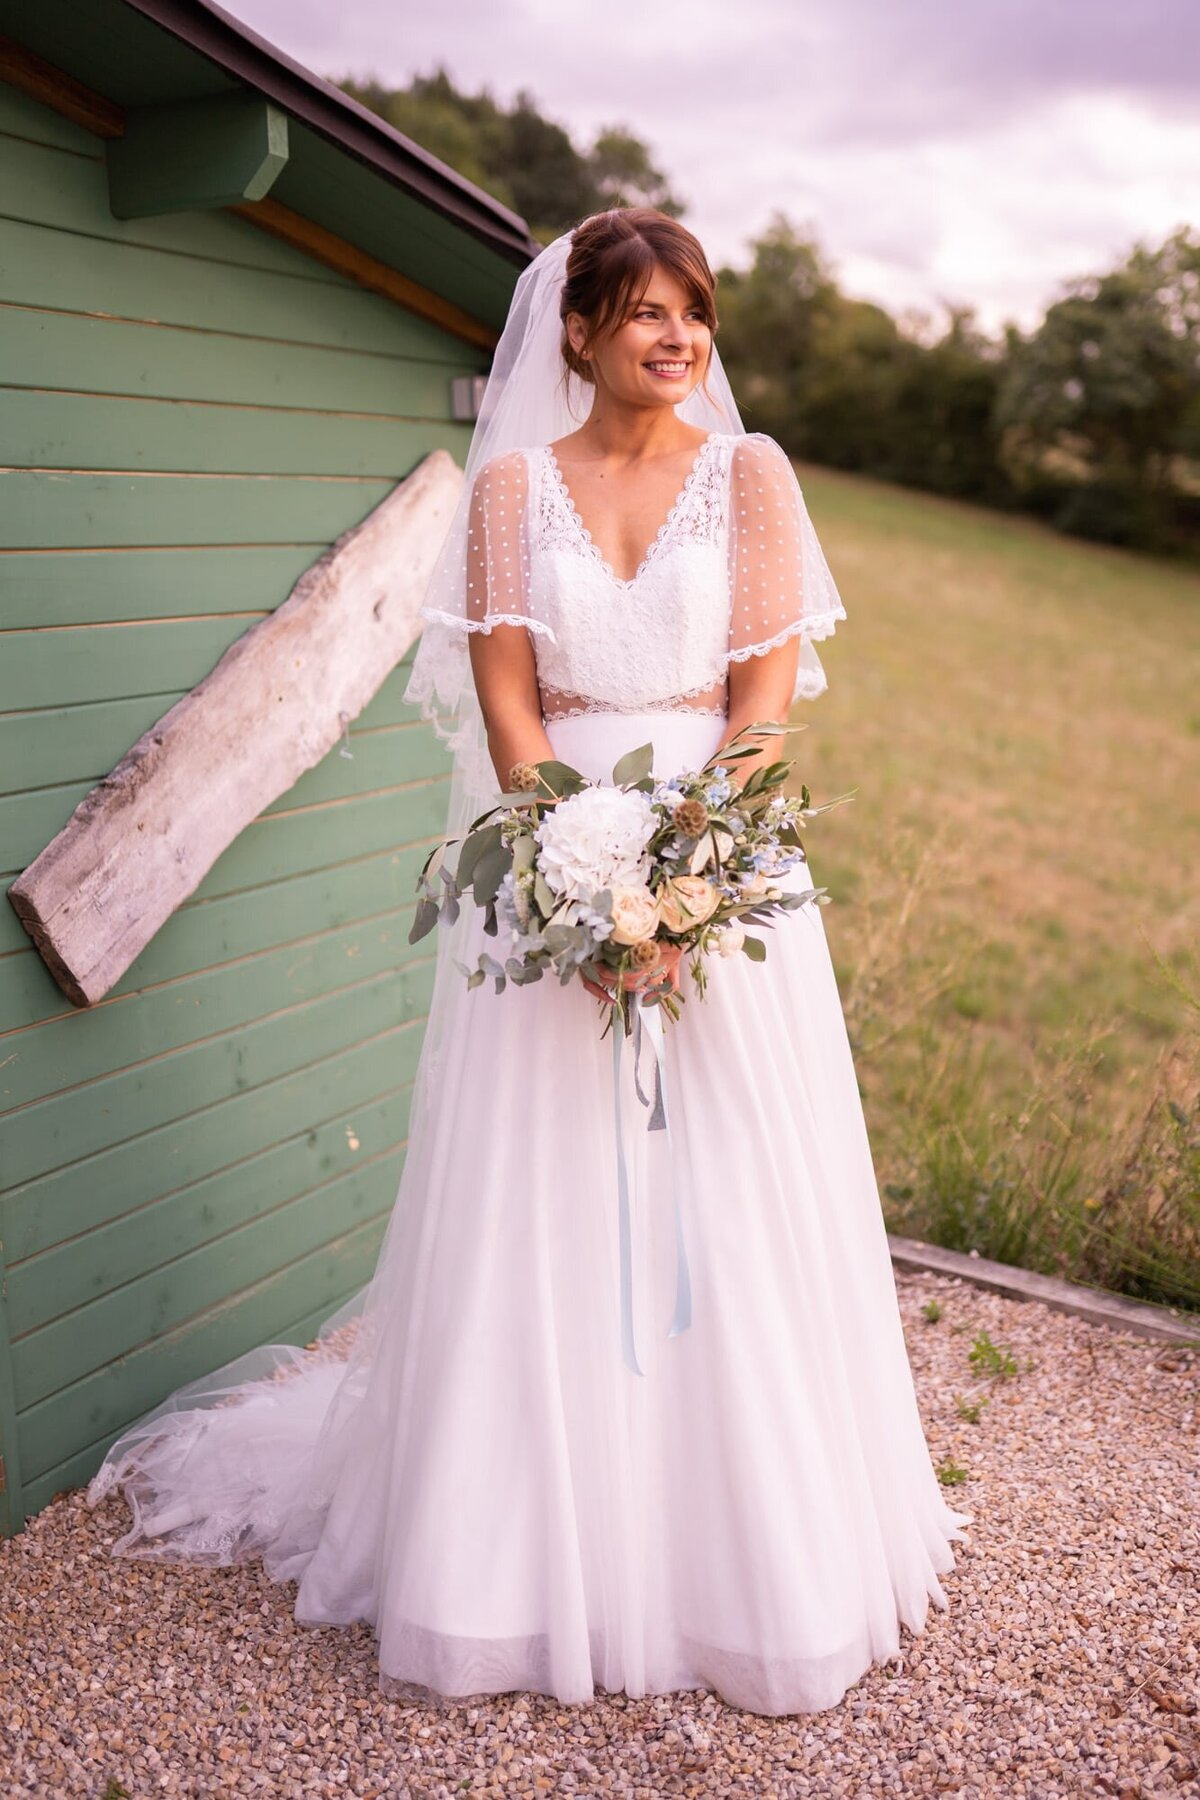 Lyon_Wedding_Photographer-0665